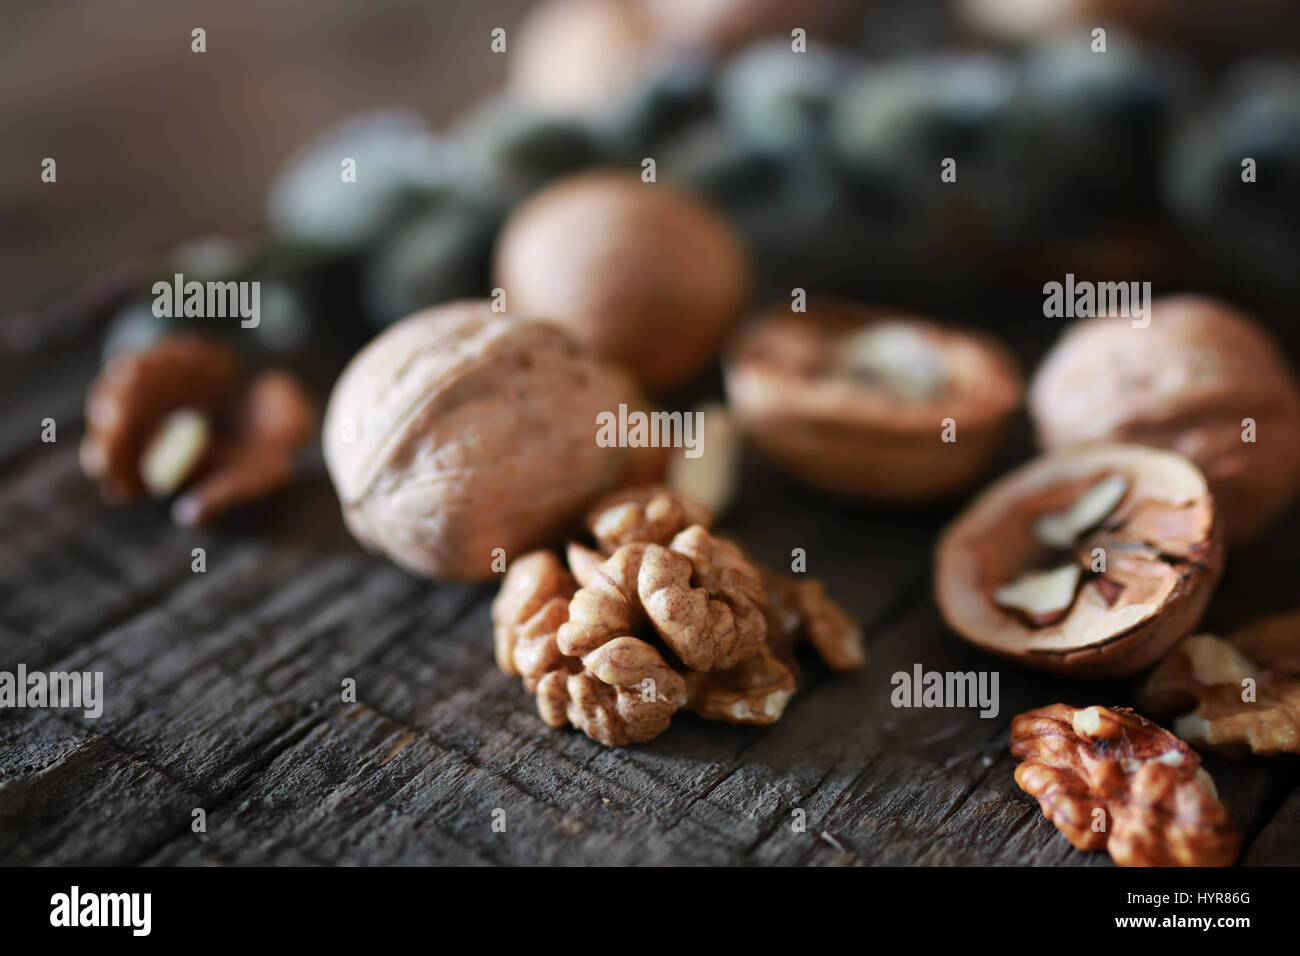 walnuts, whole and peeled Stock Photo